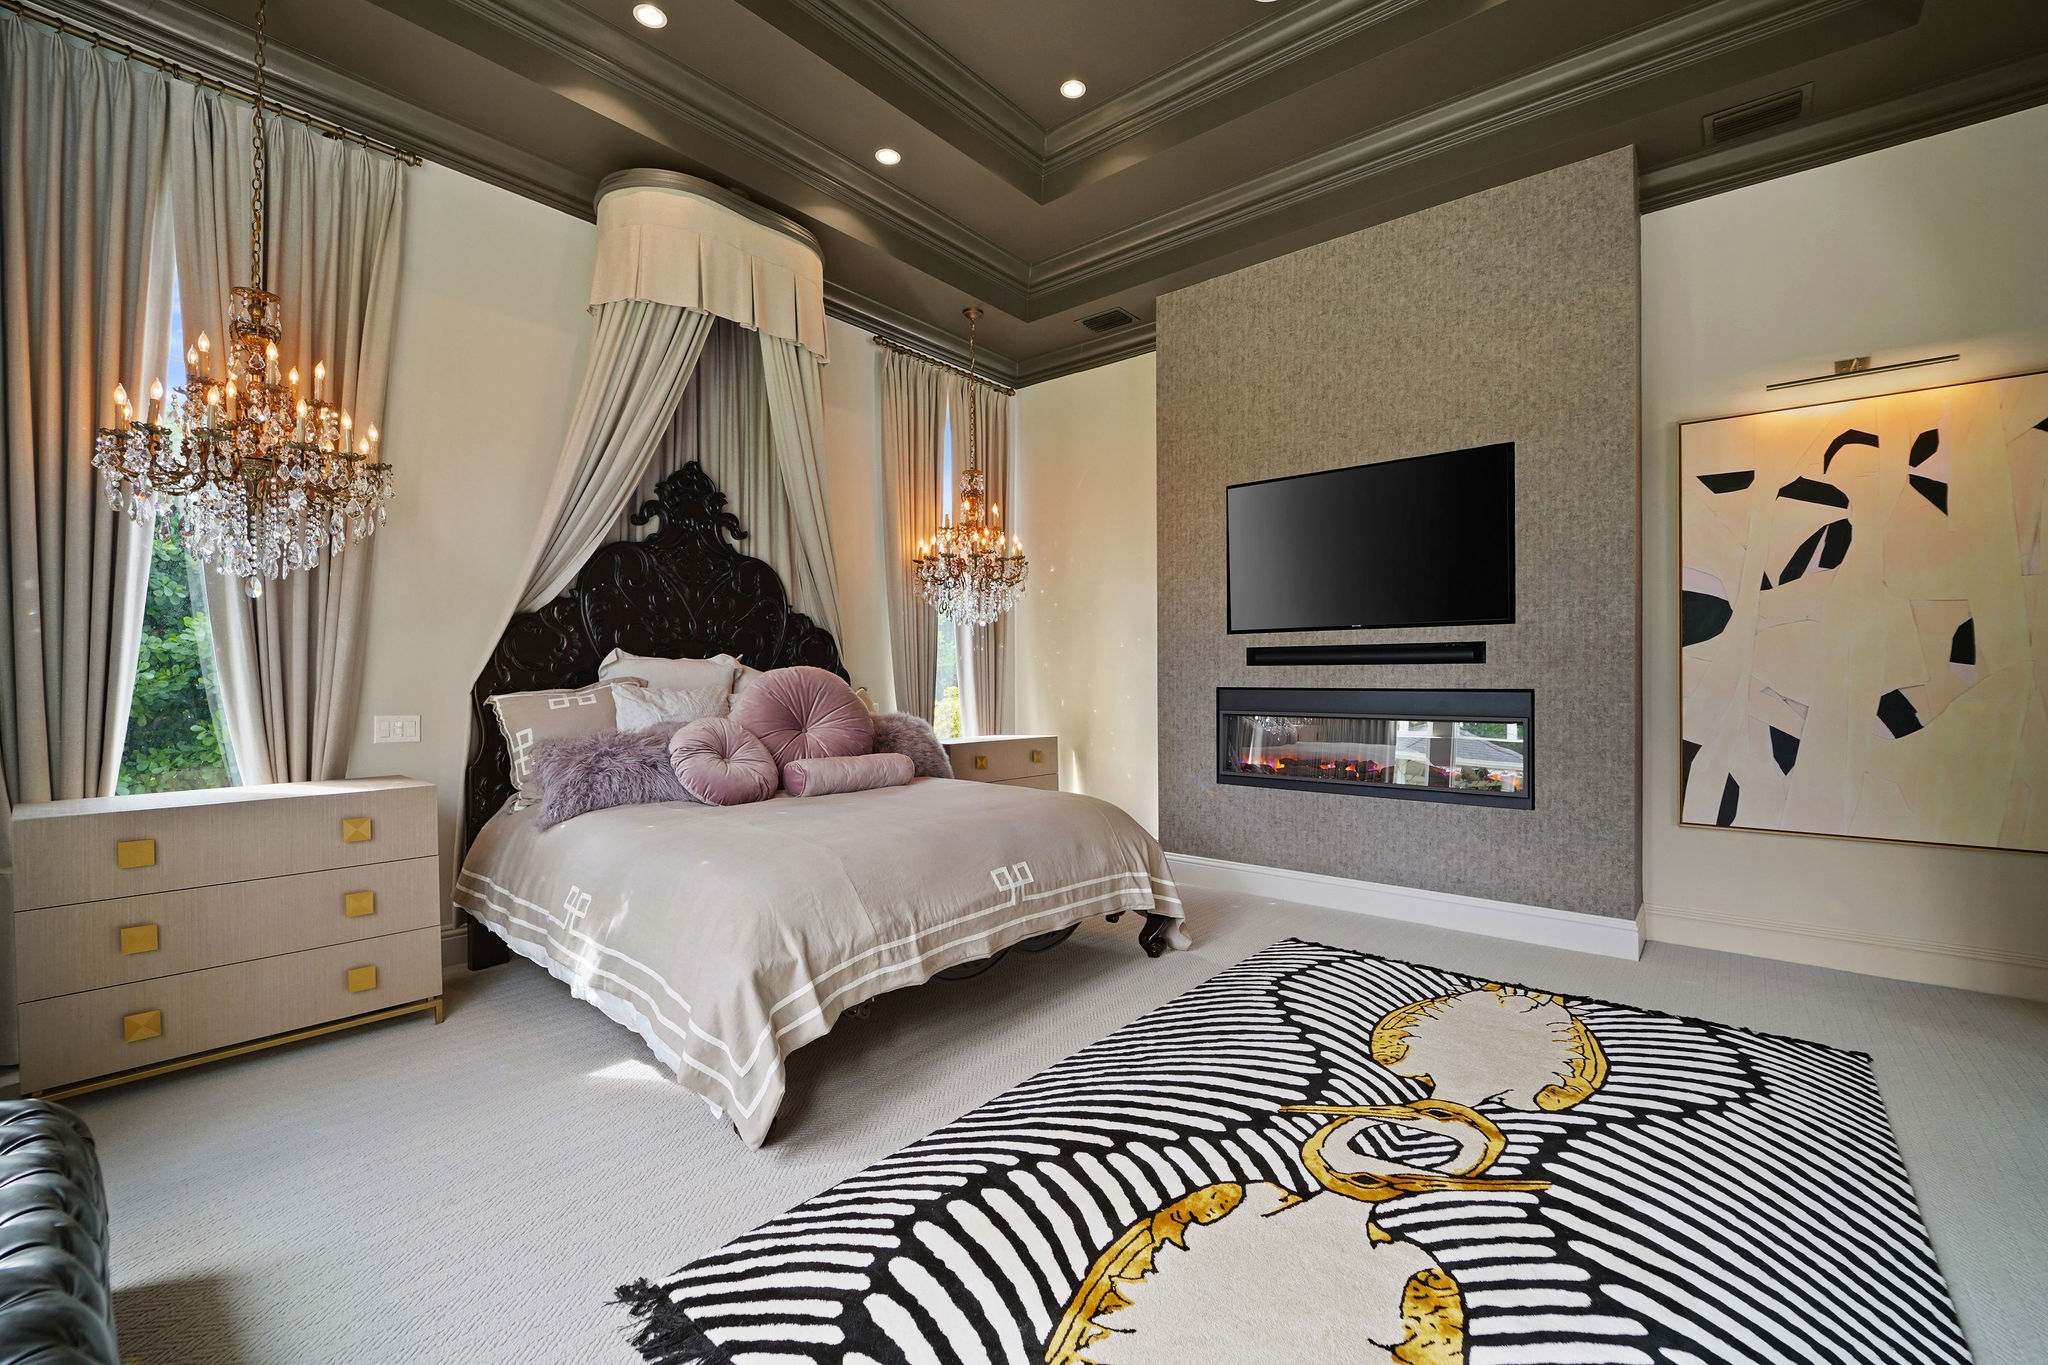 A Romantic Vibe With Eclectic Accents - The New Project By Hillary White With Rug'Society